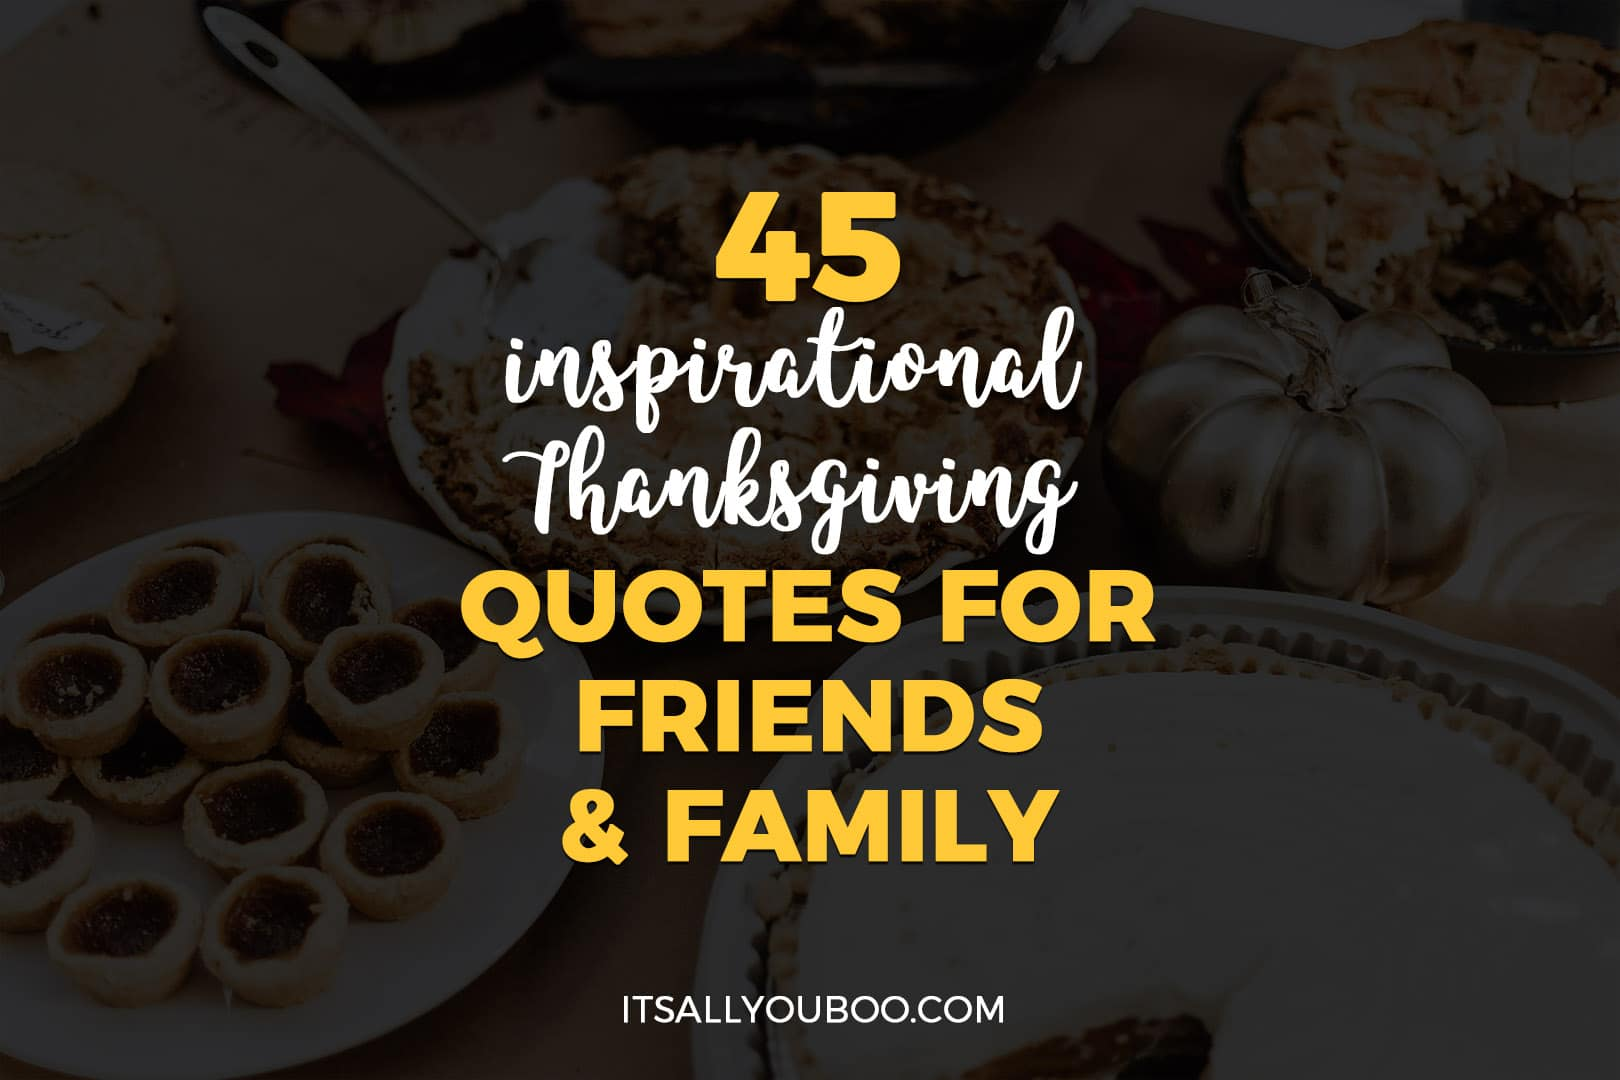 45 Inspirational Thanksgiving Quotes for Friends and Family